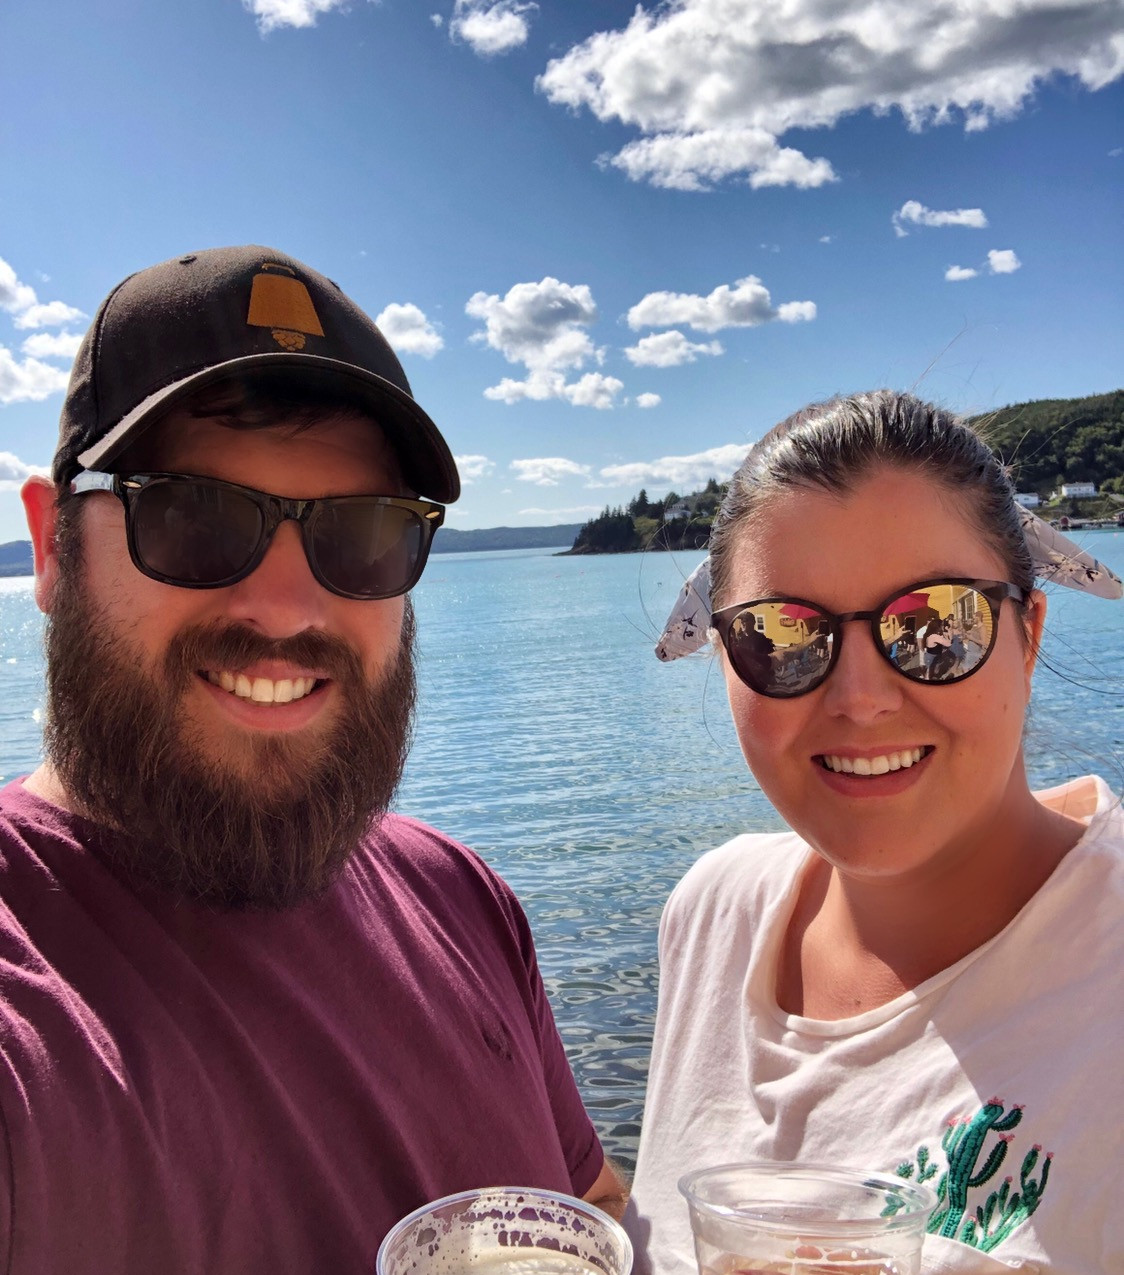 husband and wife smiling, enjoying the ocean views at Dildo Brewery